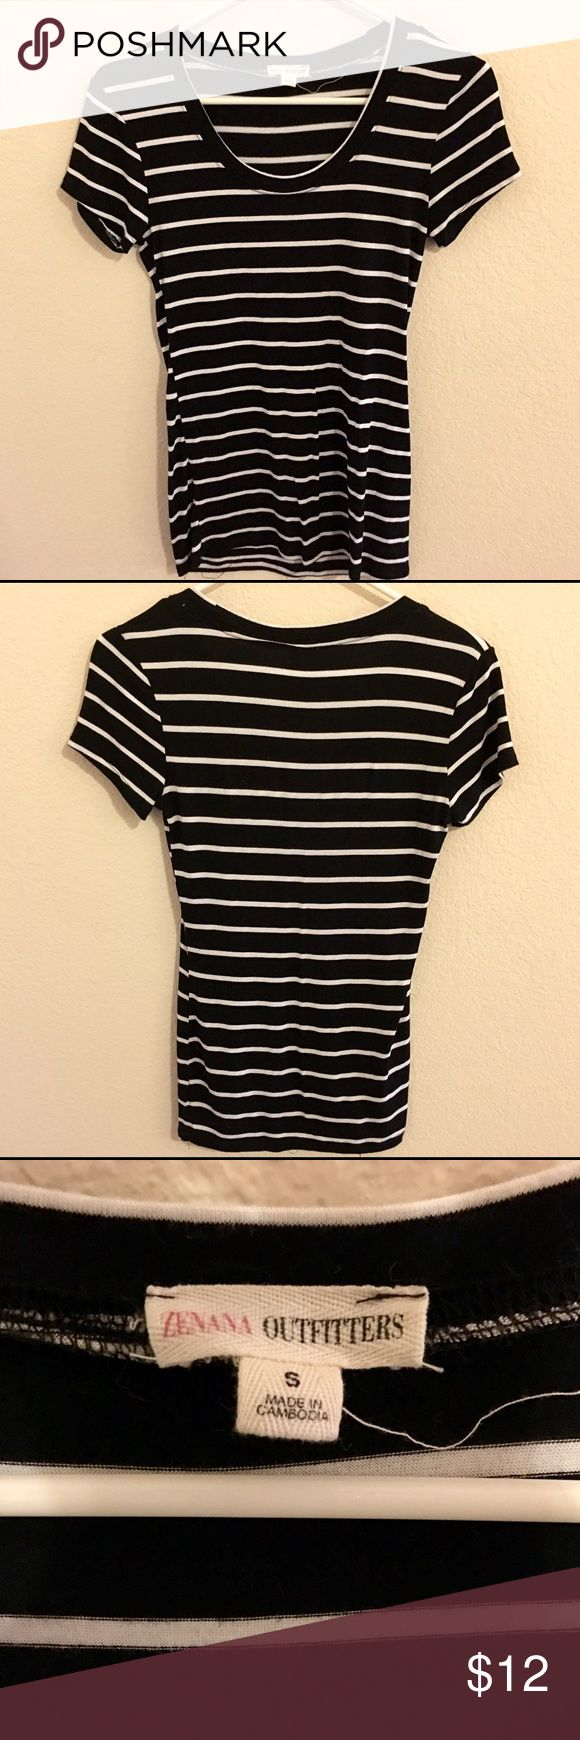 Black and White Striped Fitted Top Pre-owned and well loved, but in great condition. This tee is super soft and super cute. Tops Tees - Short Sleeve